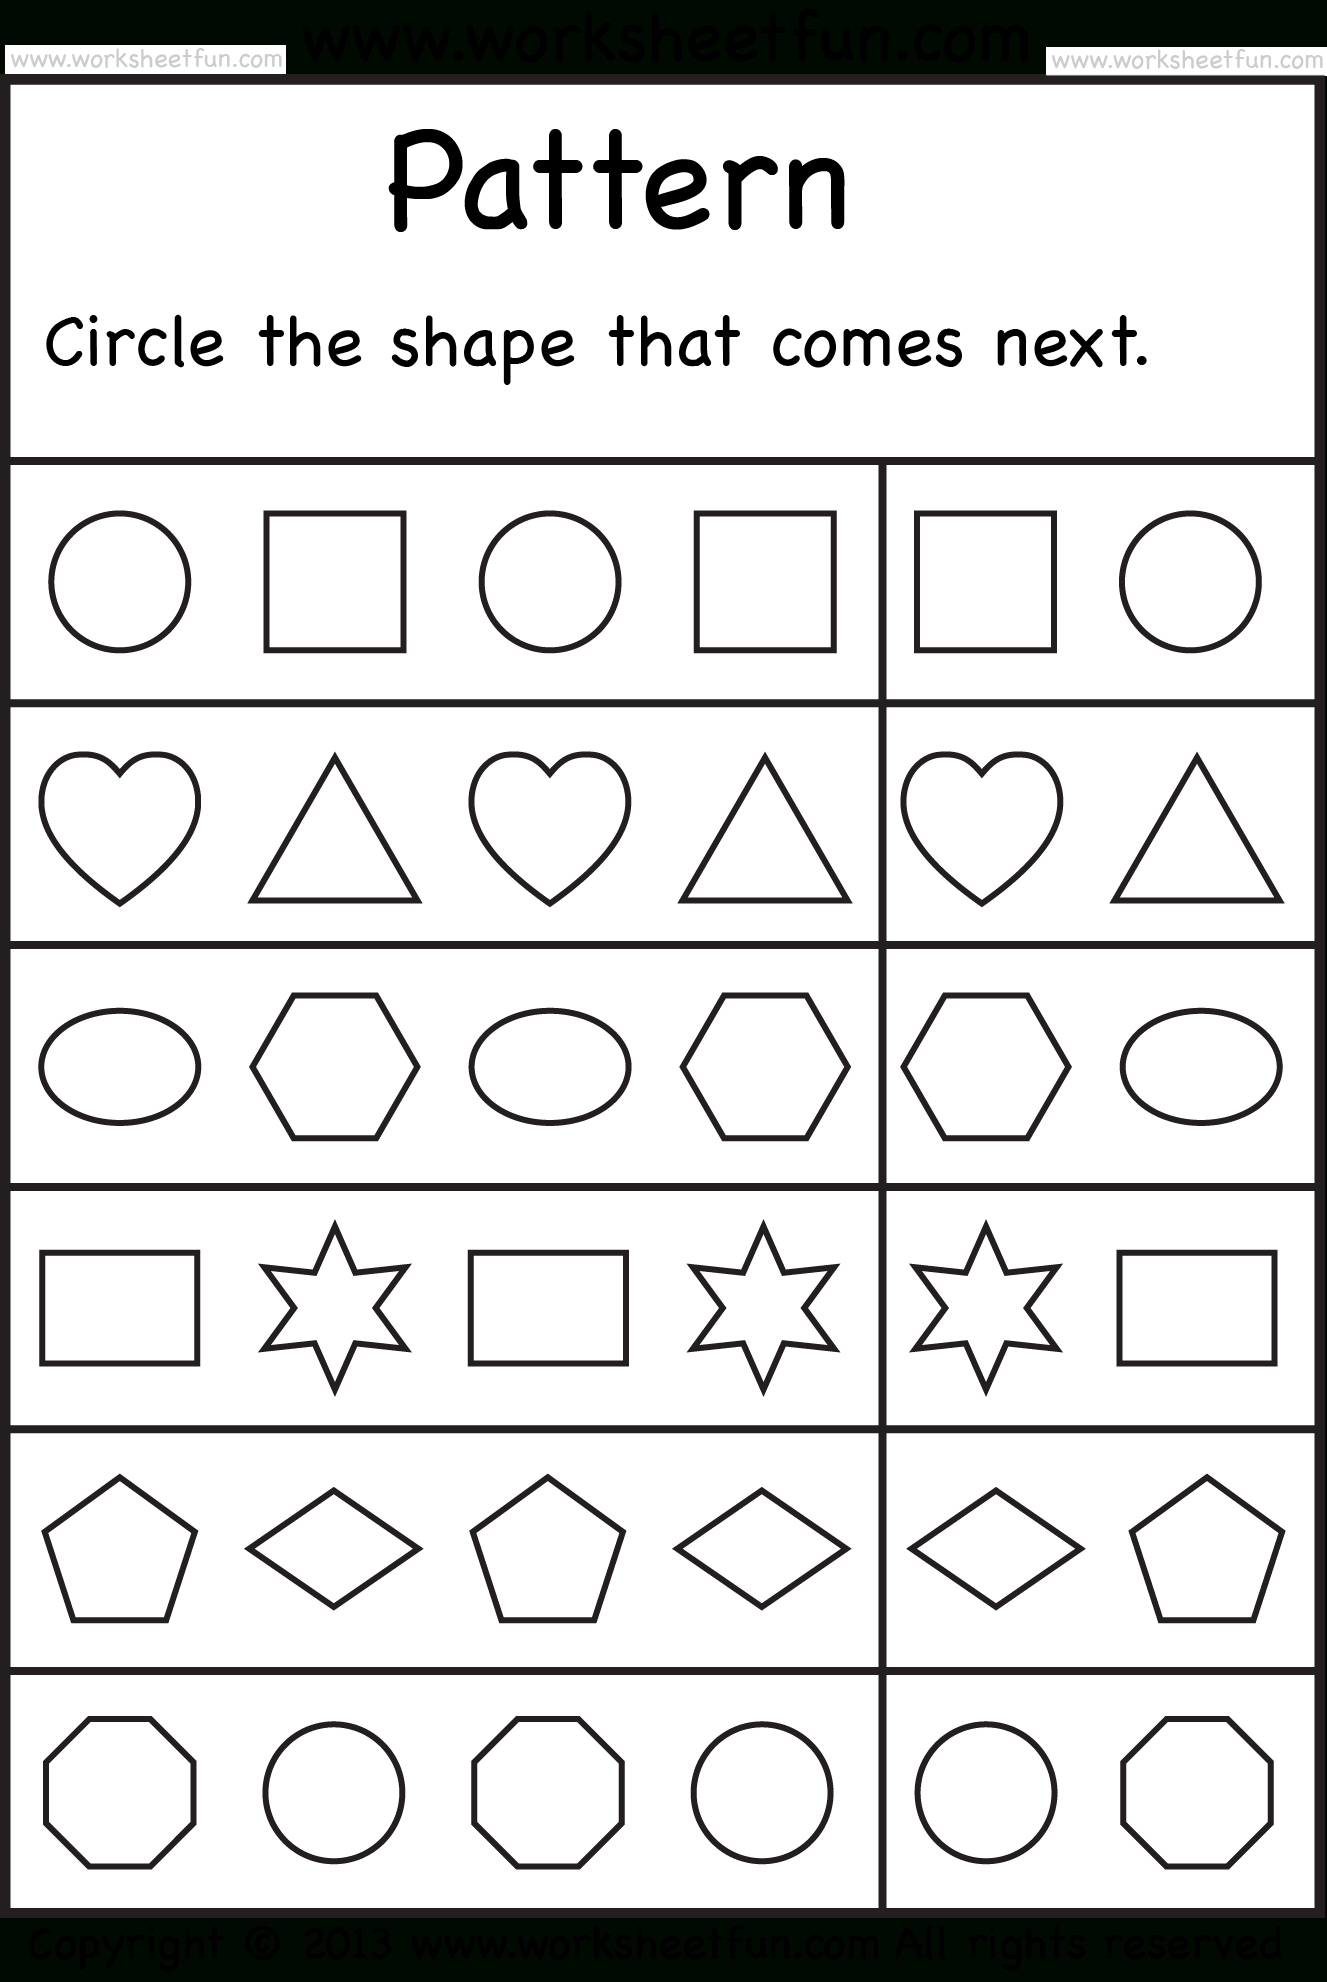 Free Printable Learning Pages For Toddlers